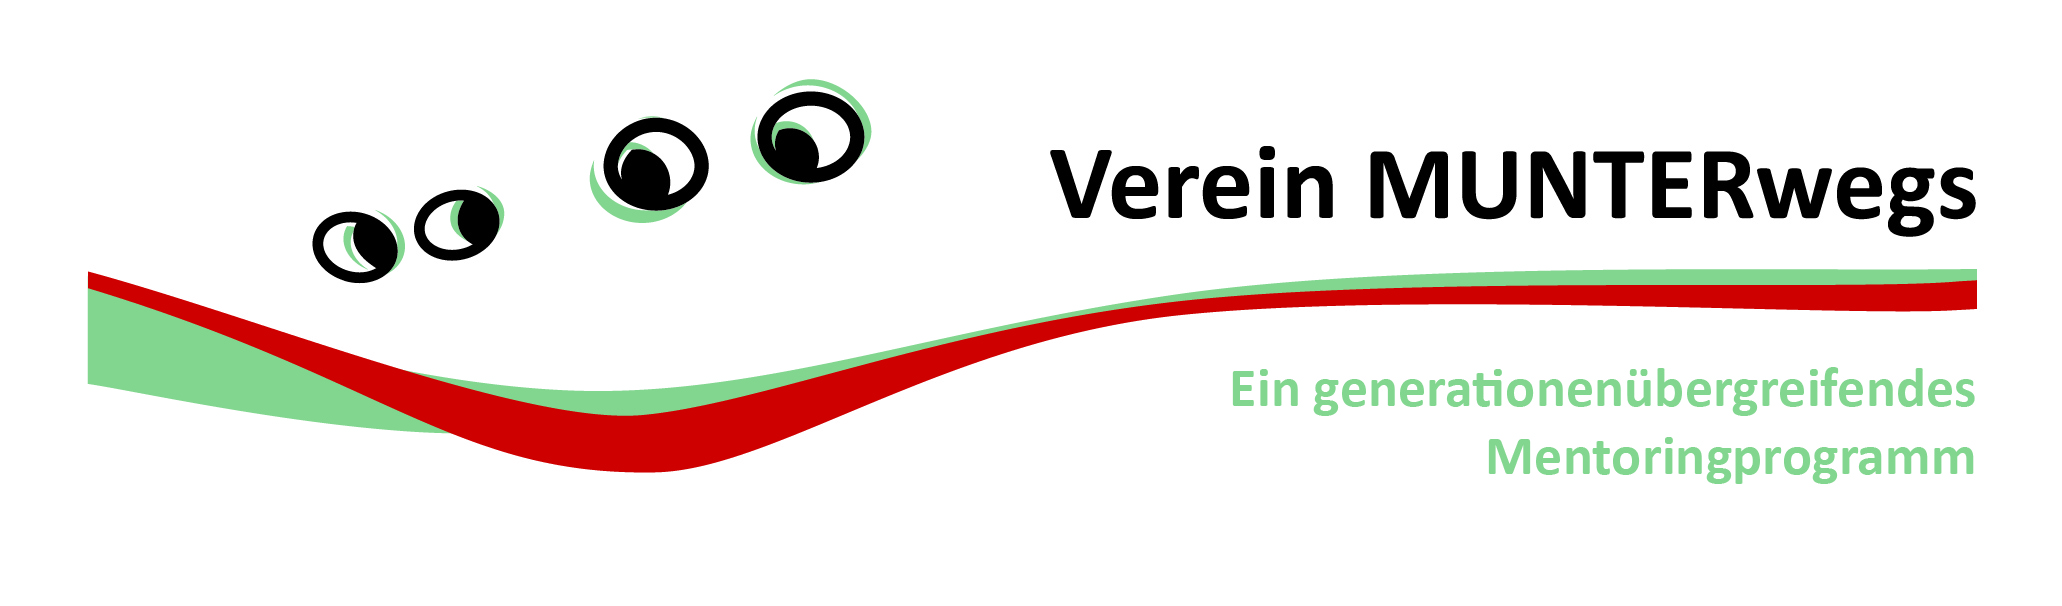 Logo_MUNTERwegs_2012_gross